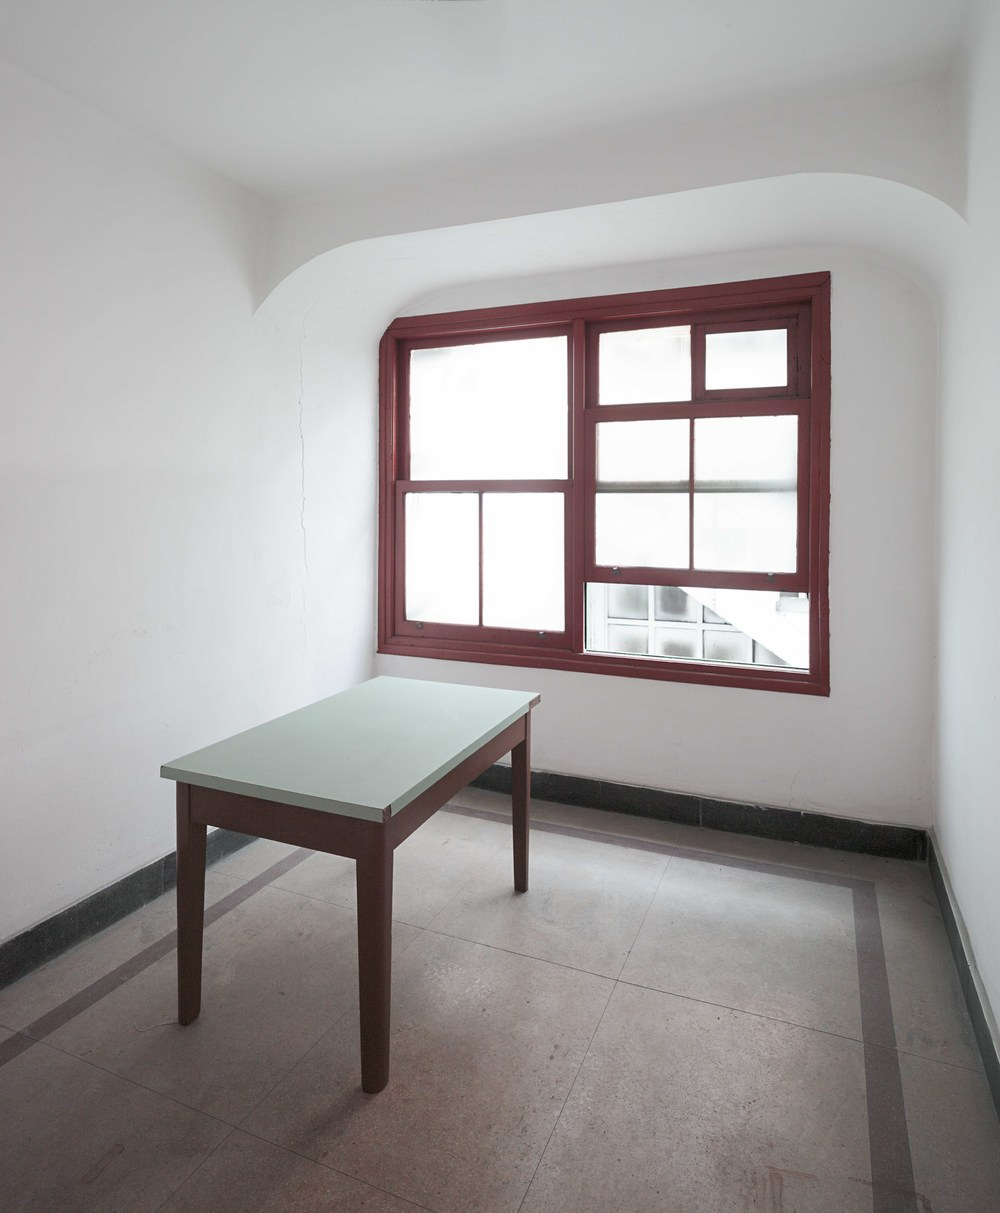 table window room.jpg